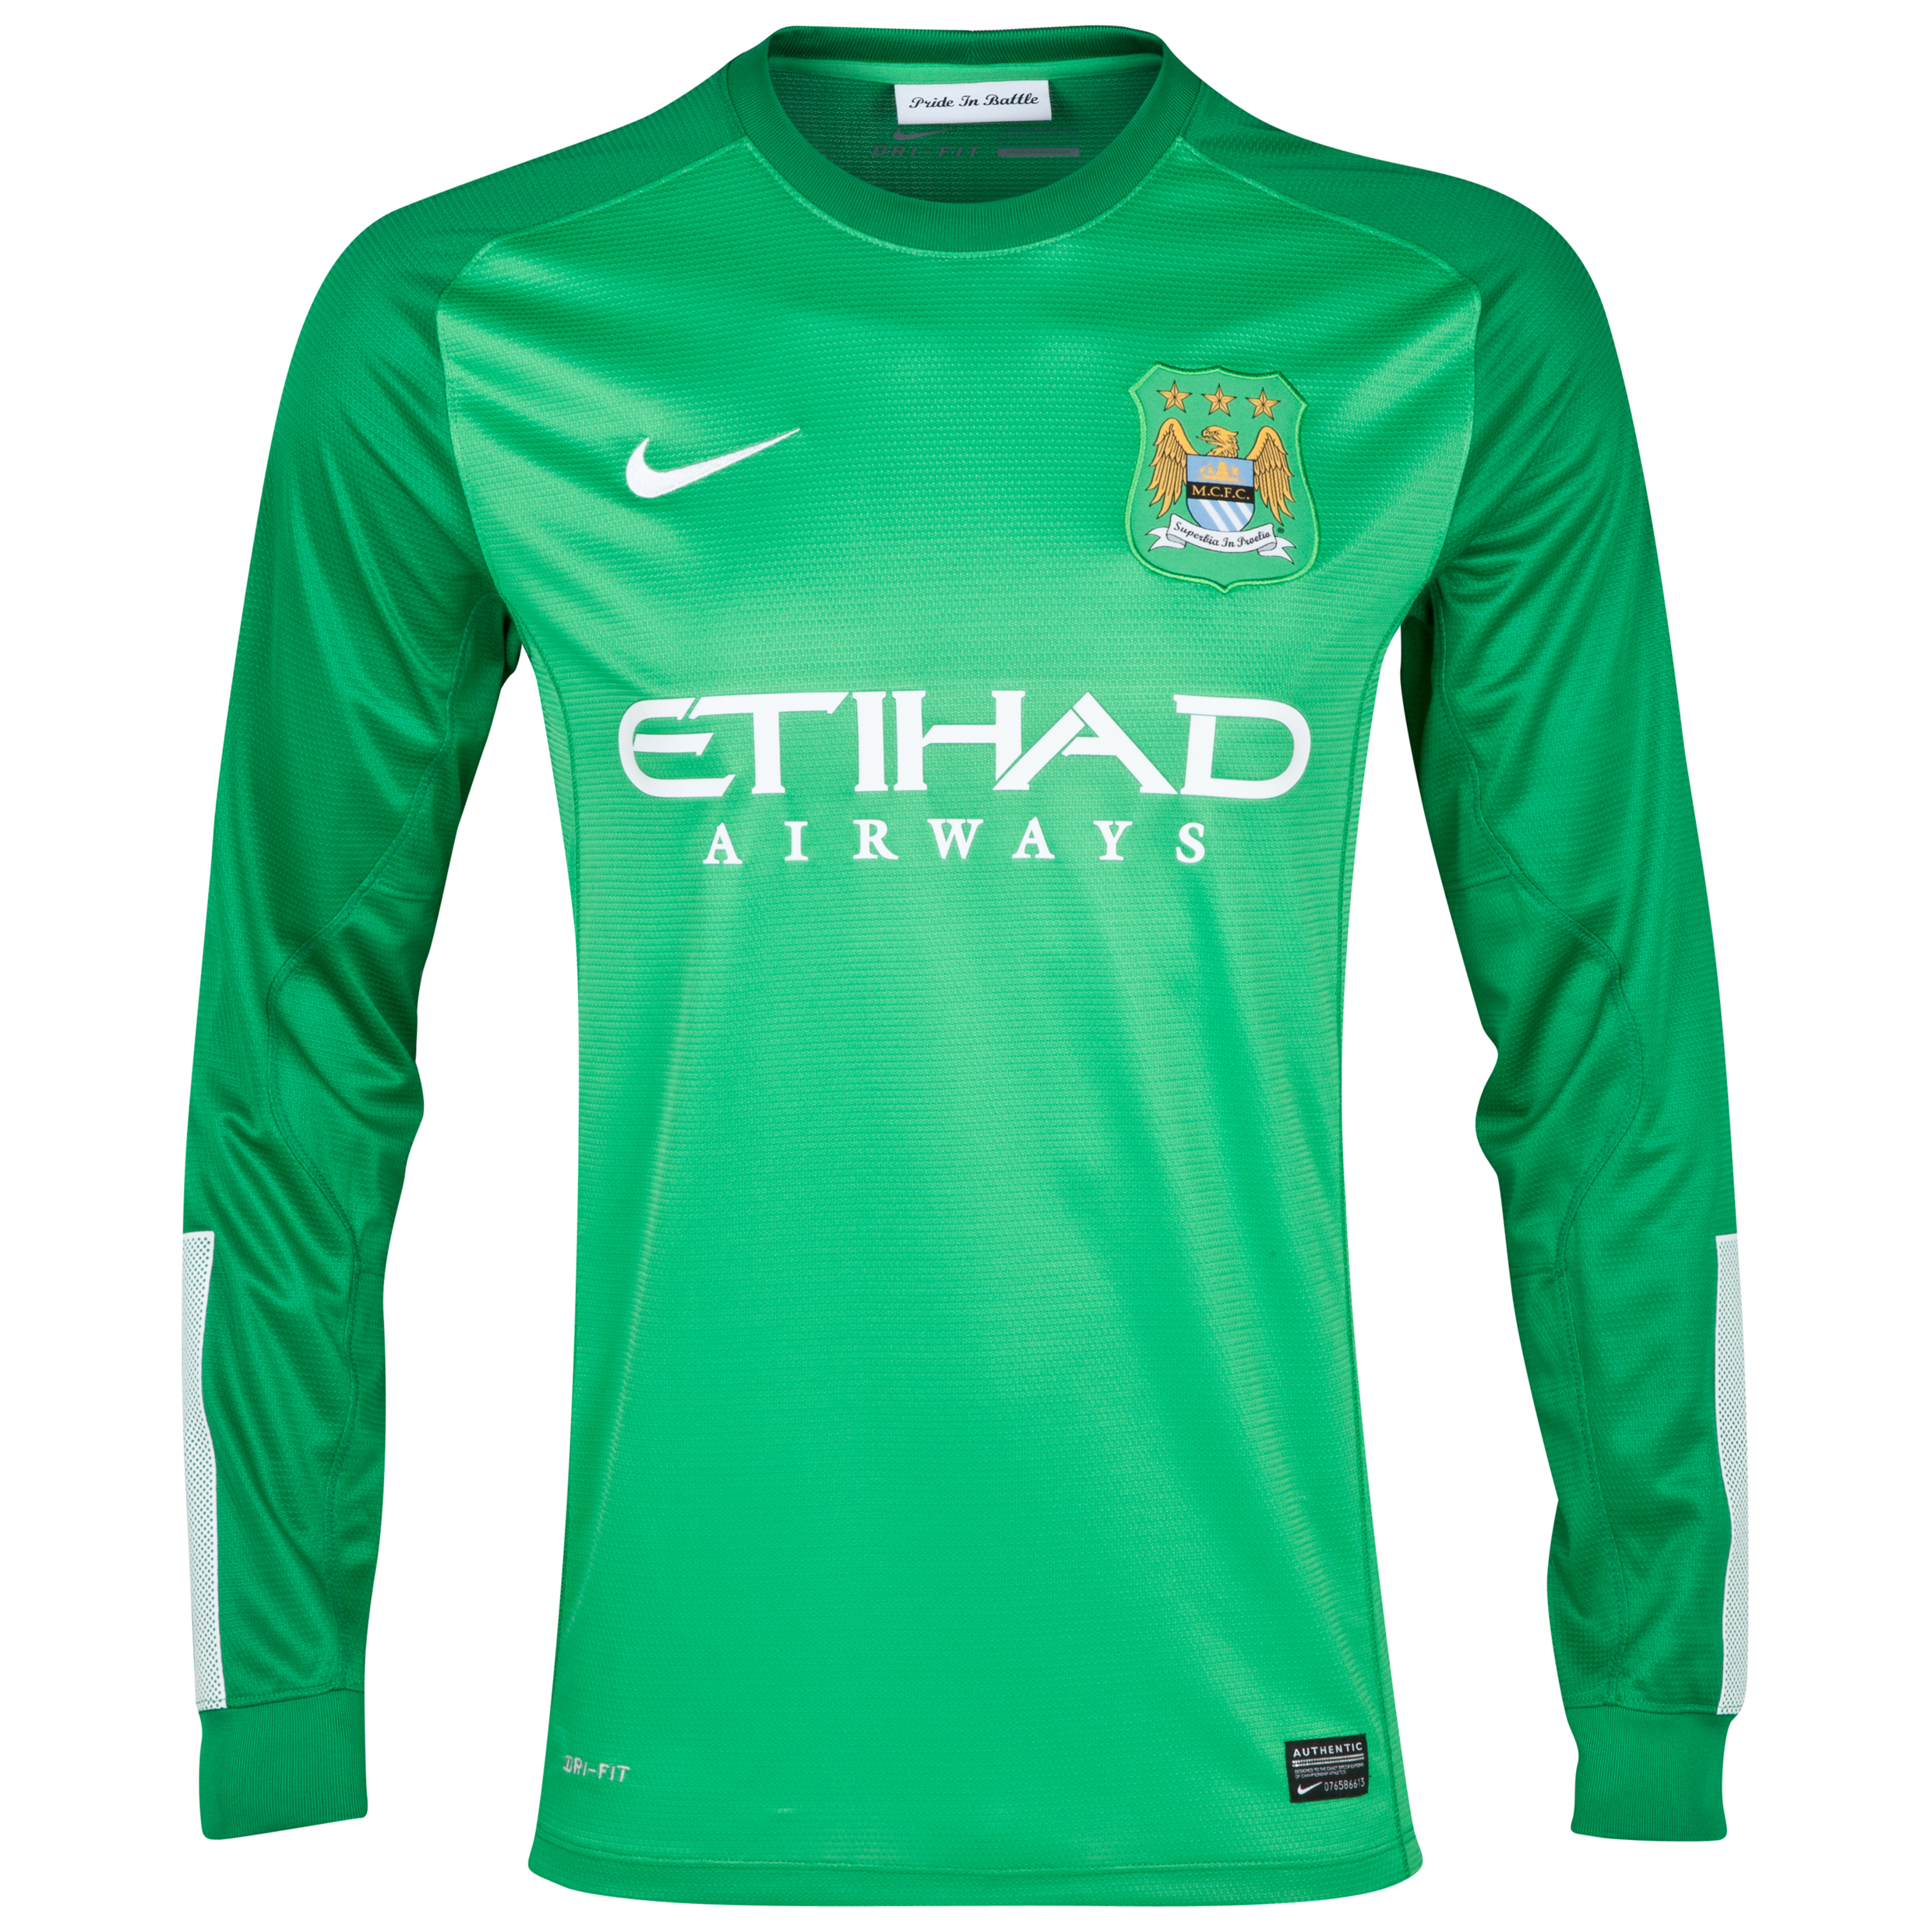 Manchester City Option 1 Goalkeeper Shirt 2013/14 - Green